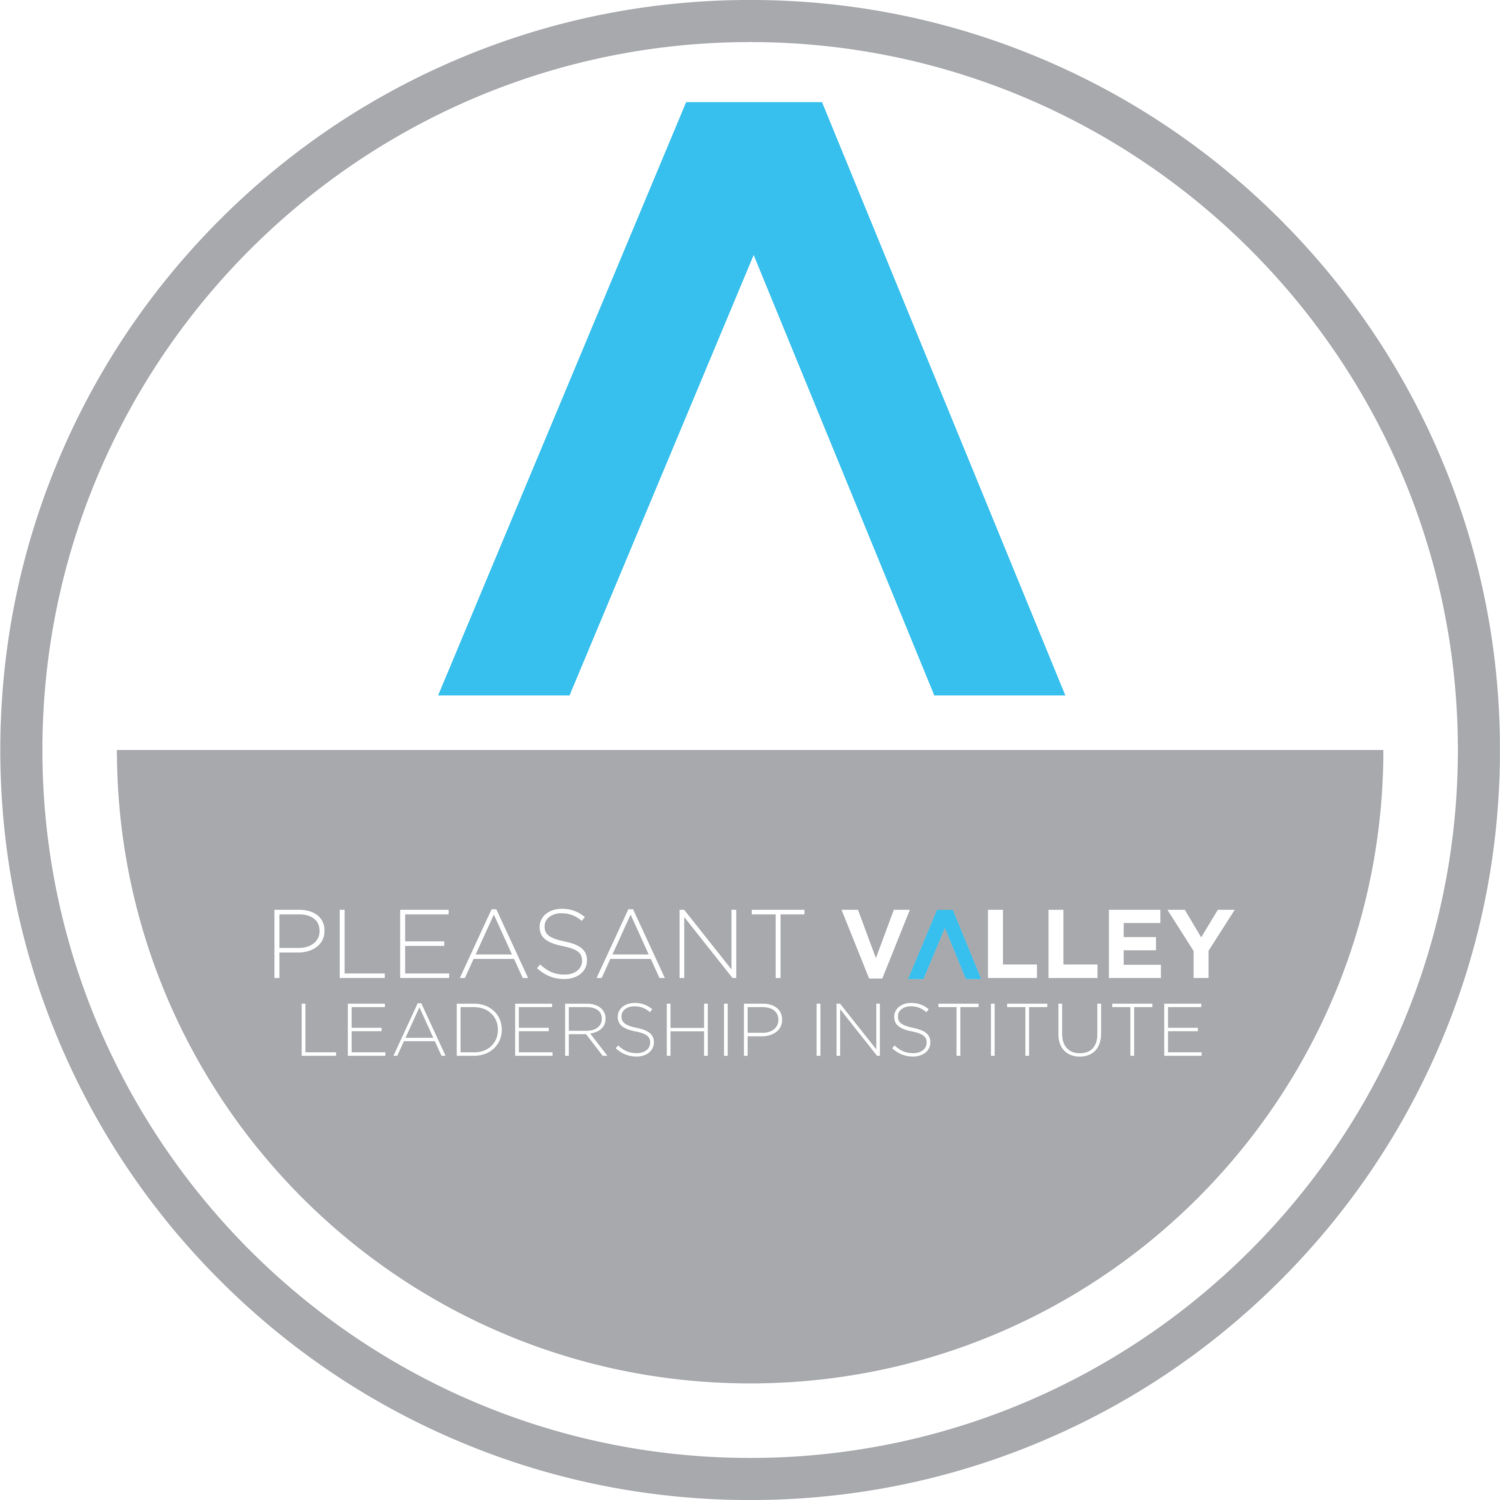 Pleasant Valley Leadership Institute